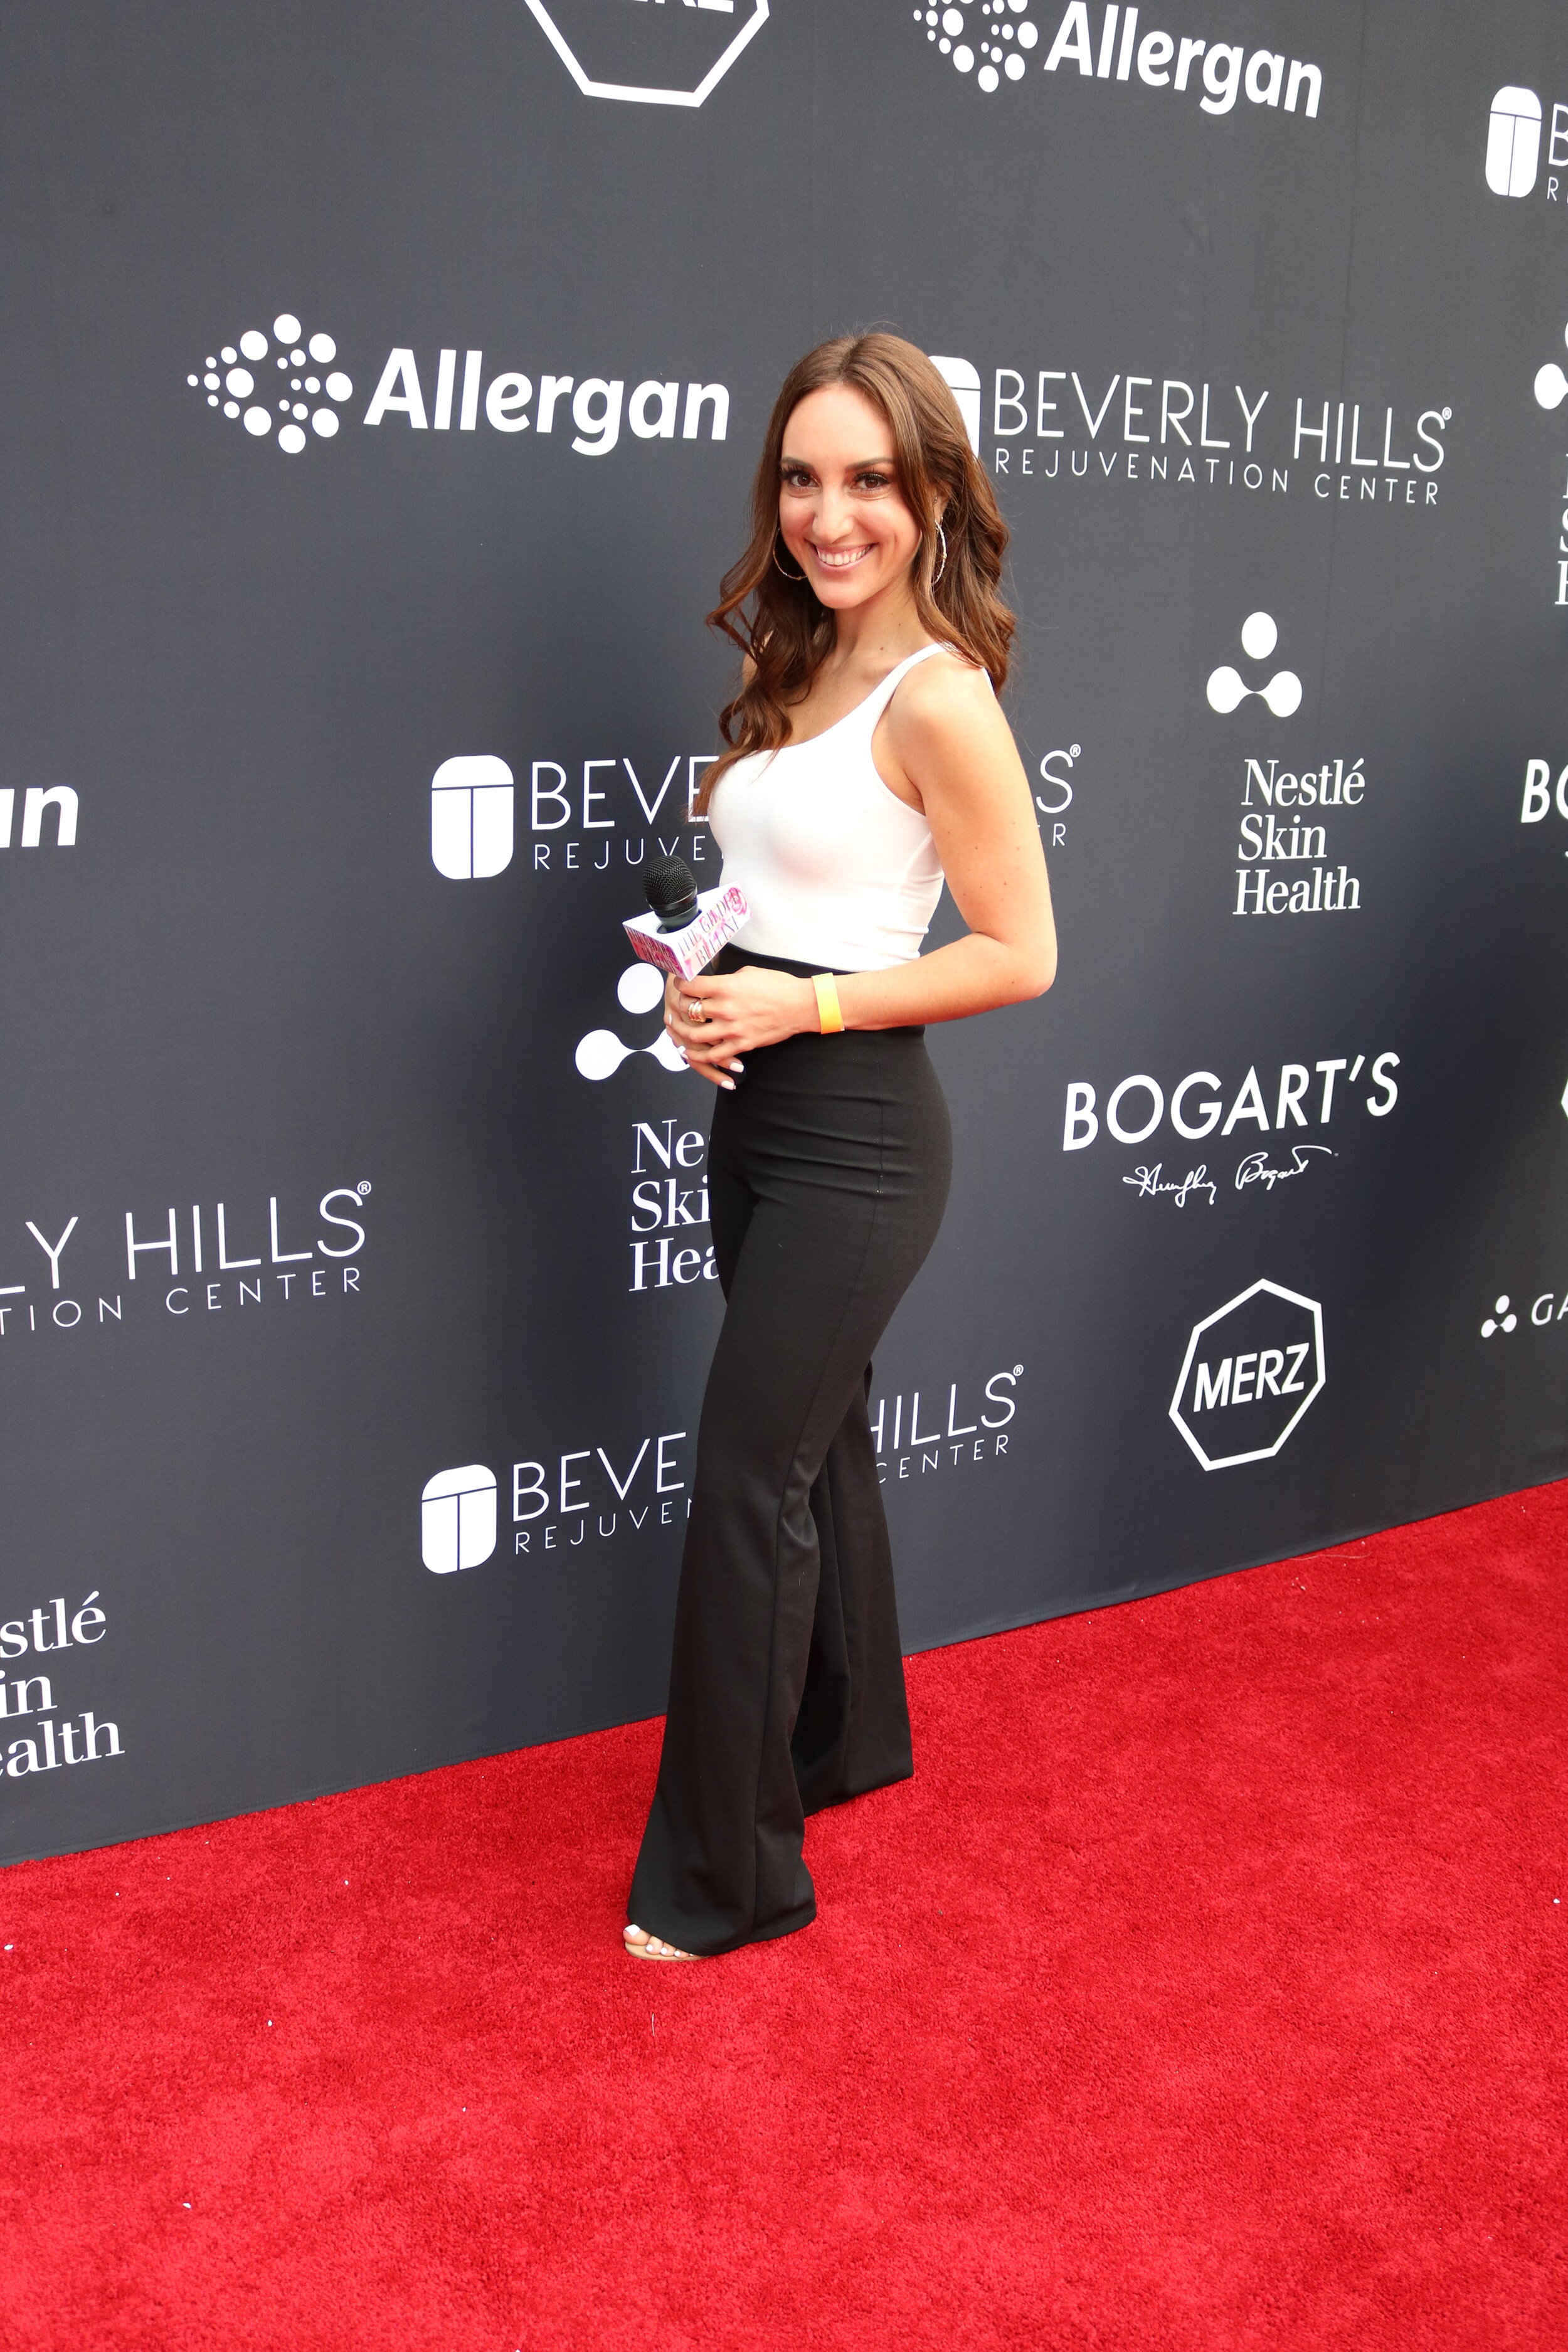 Brielle Galekovic of The Gilded Bellini at The Beverly Hills Rejuvenation Center